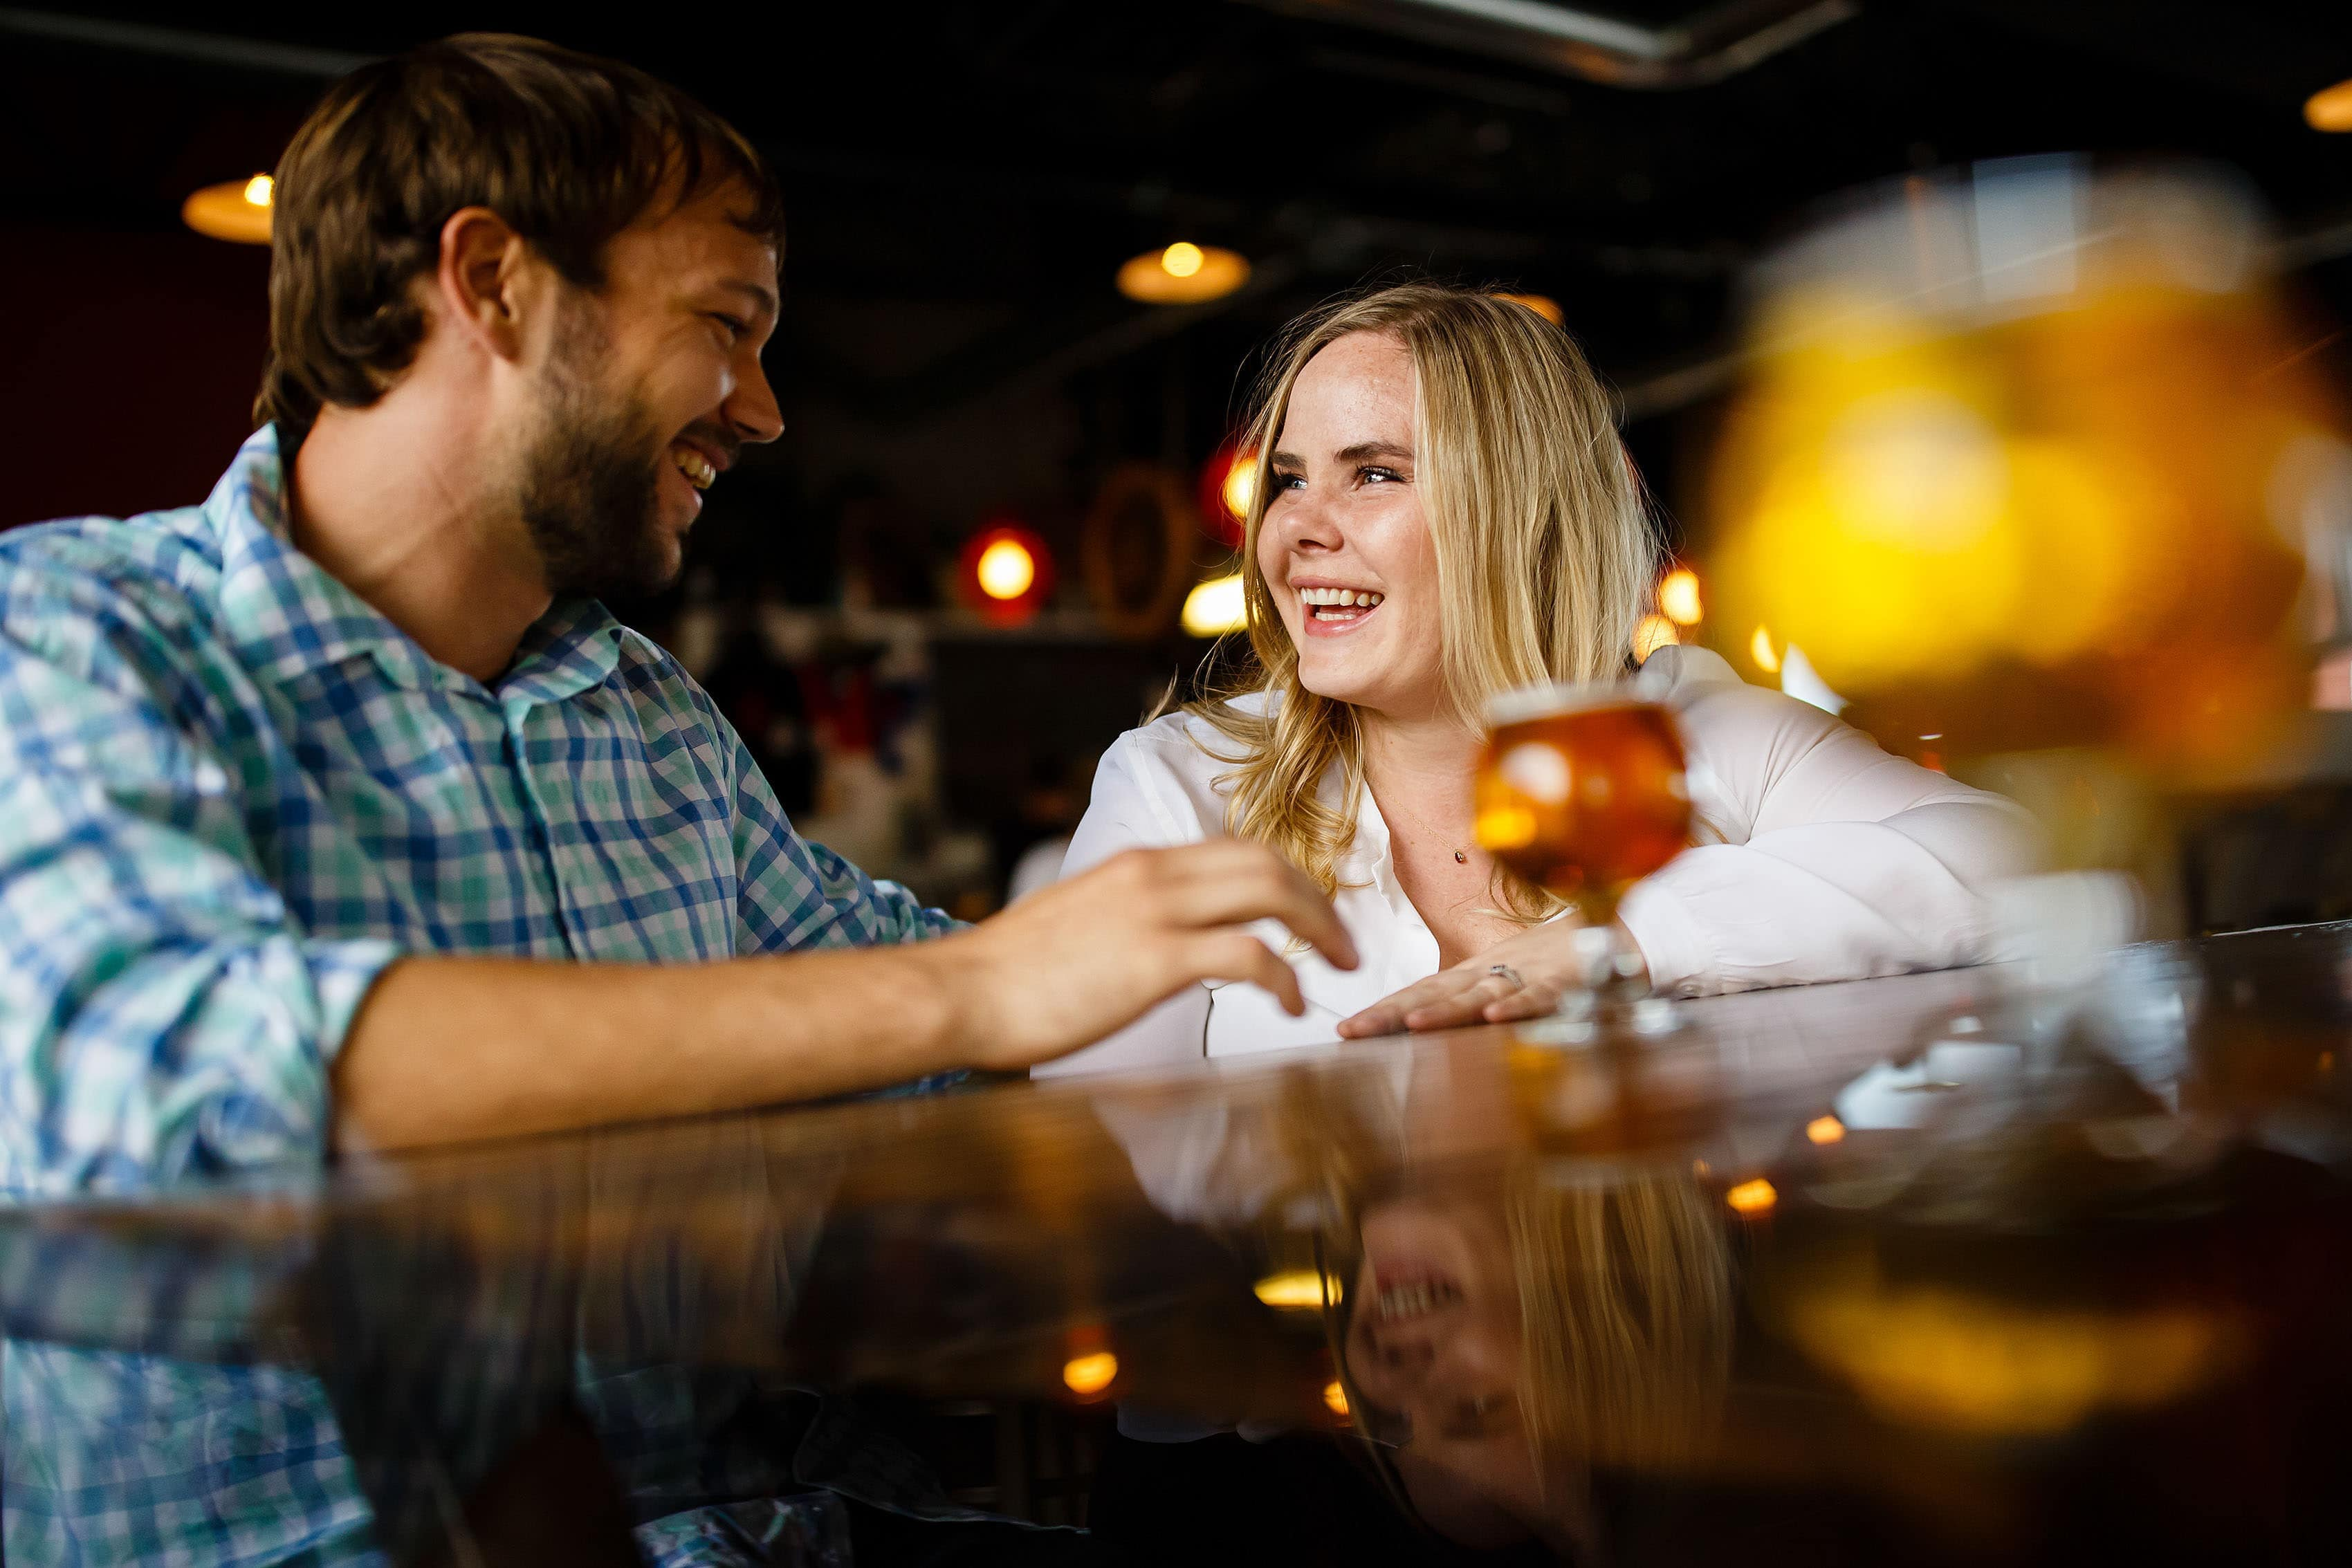 Coza and Joel enjoy a beer at Cannonball Creek Brewing Company during their fall Golden engagement